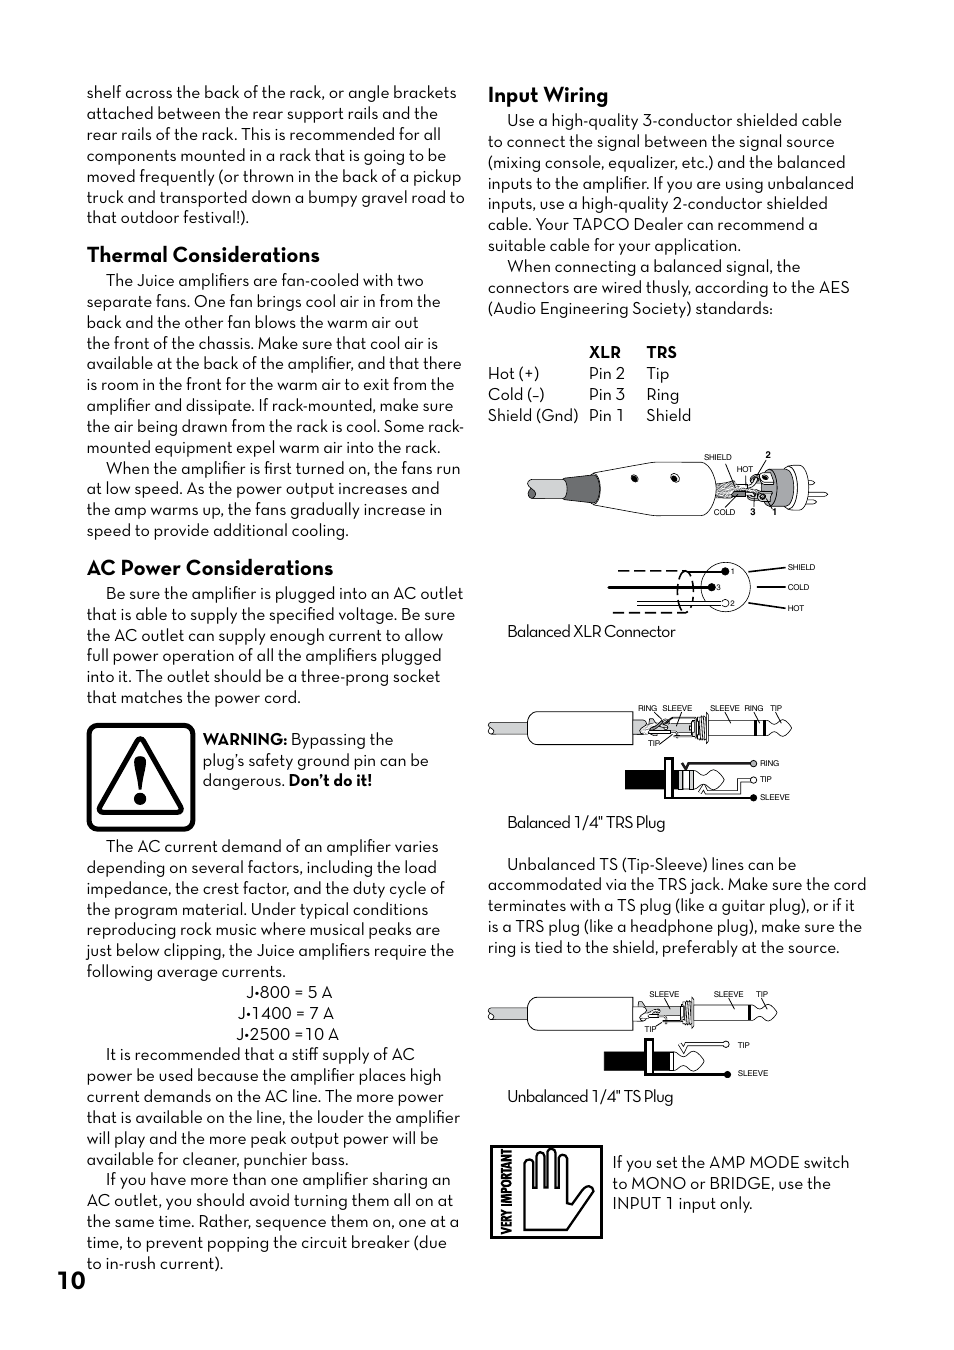 Thermal Considerations Ac Power Input Wiring Cord Tapco J 800 User Manual Page 10 20